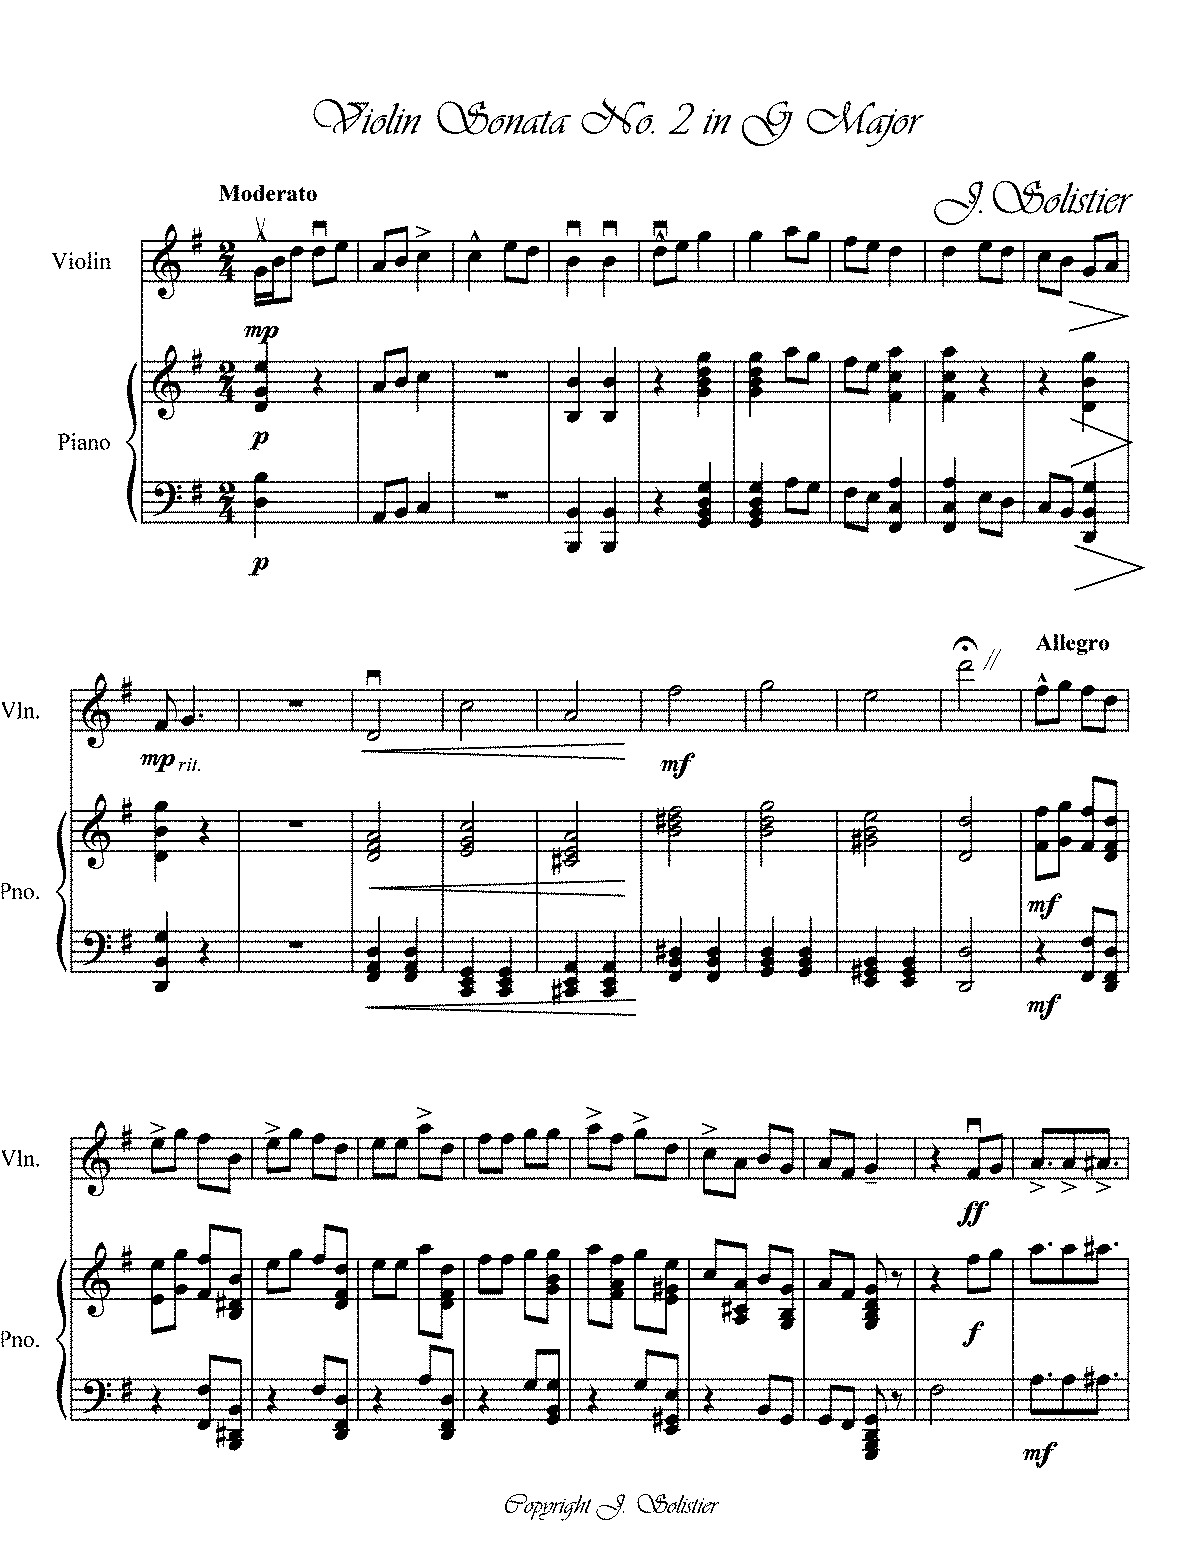 PMLP214349-Violin Sonata No. 2 in G Major.pdf